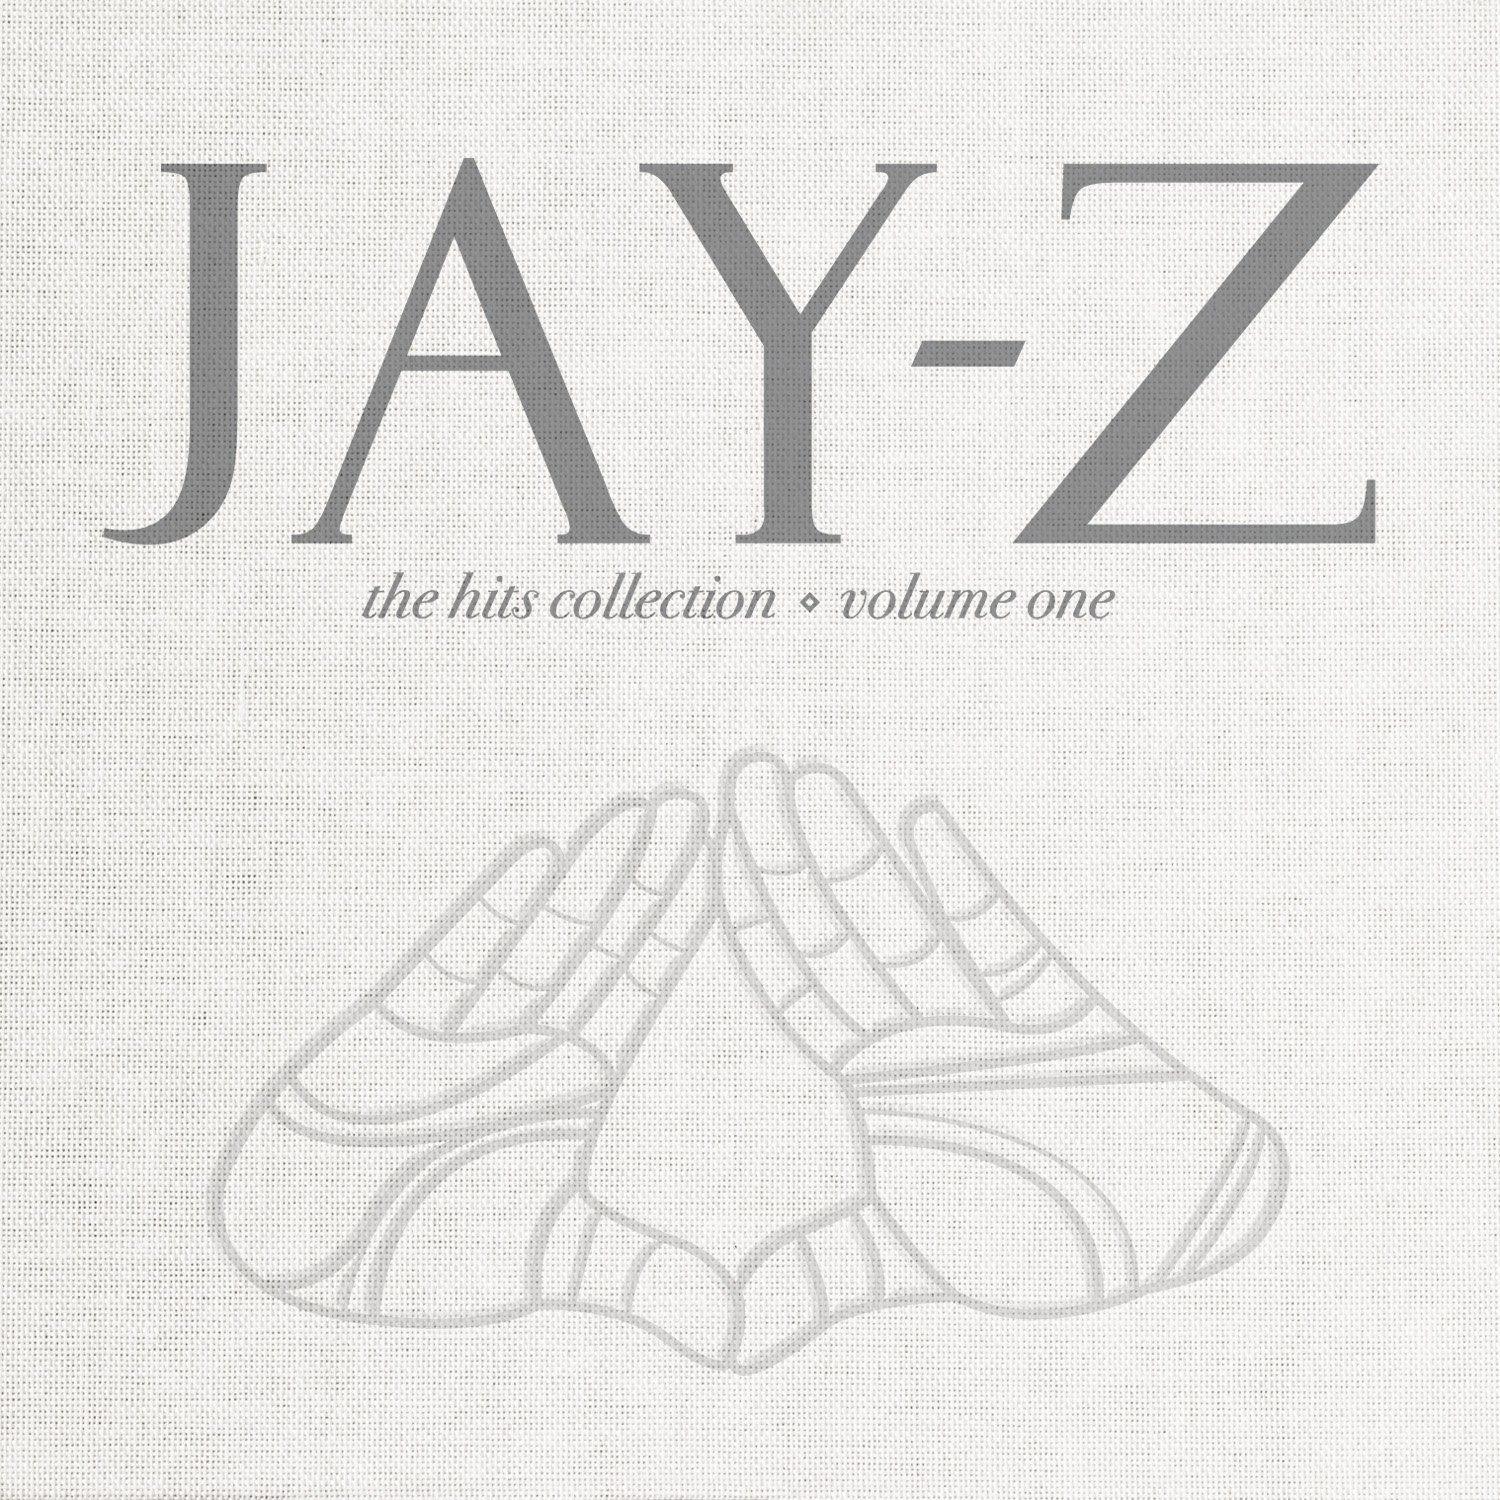 Jay z the hits collection volume one edited amazon music malvernweather Gallery